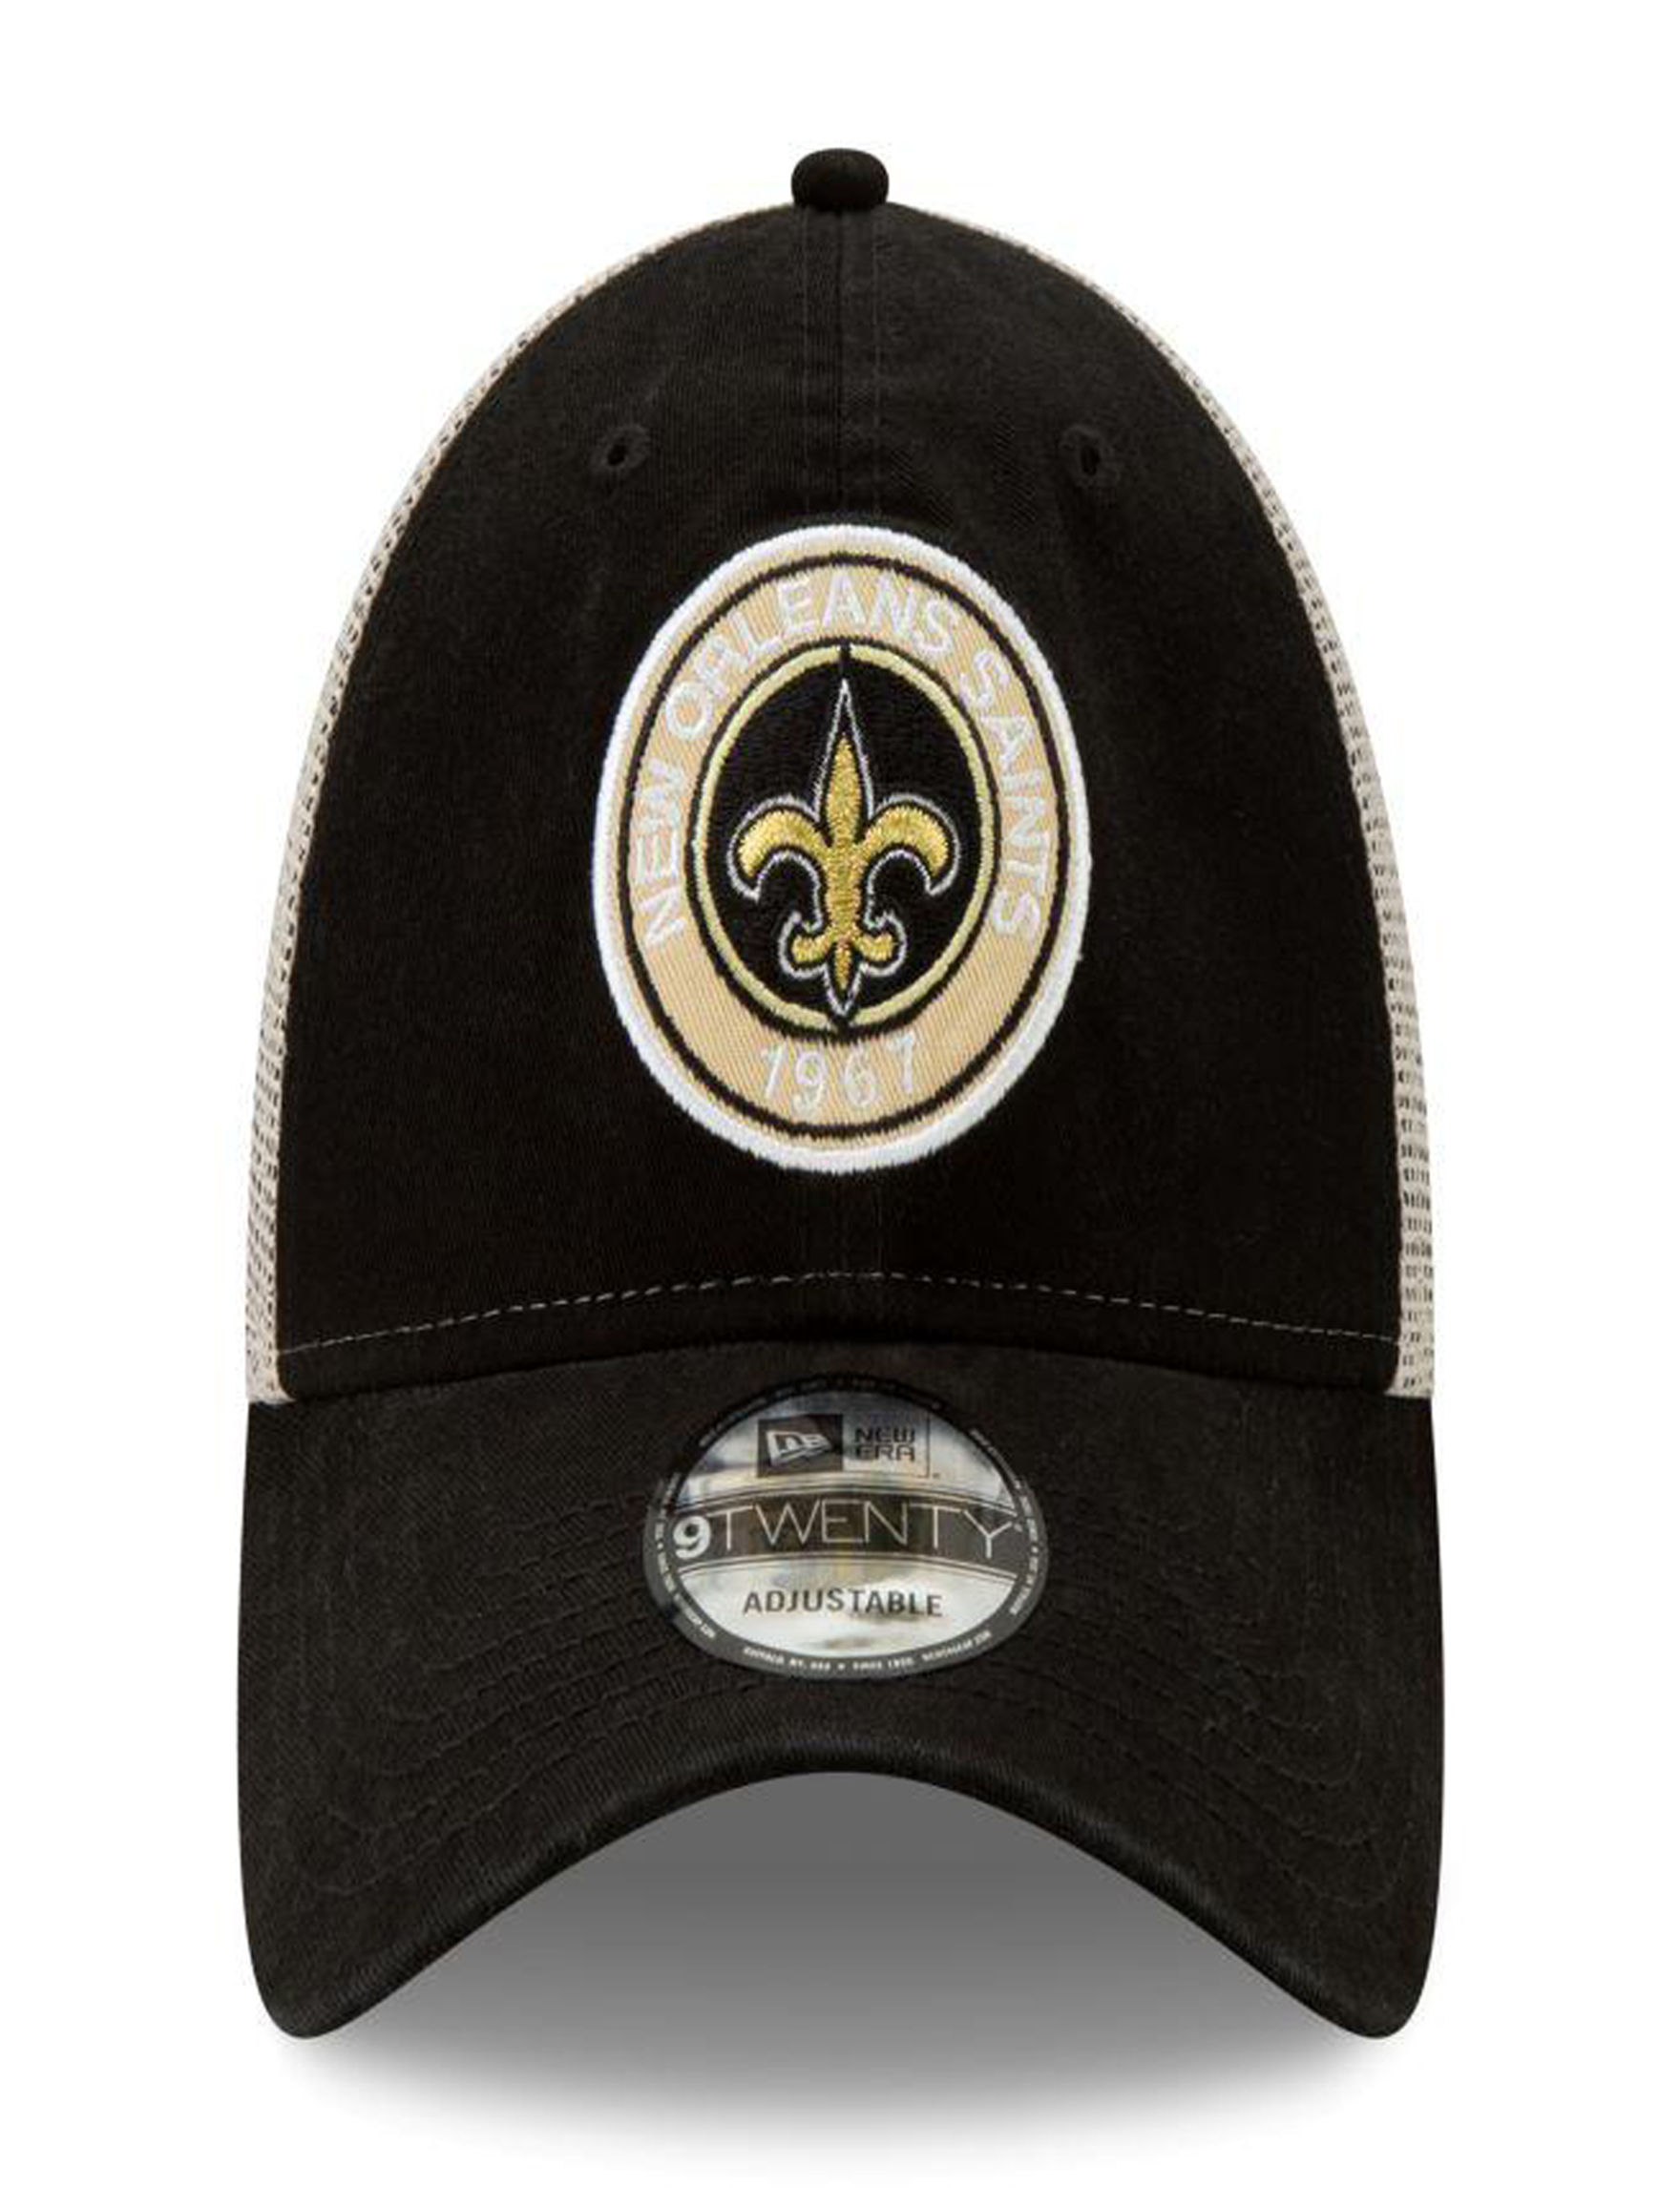 NFL Black / White Hats & Headwear